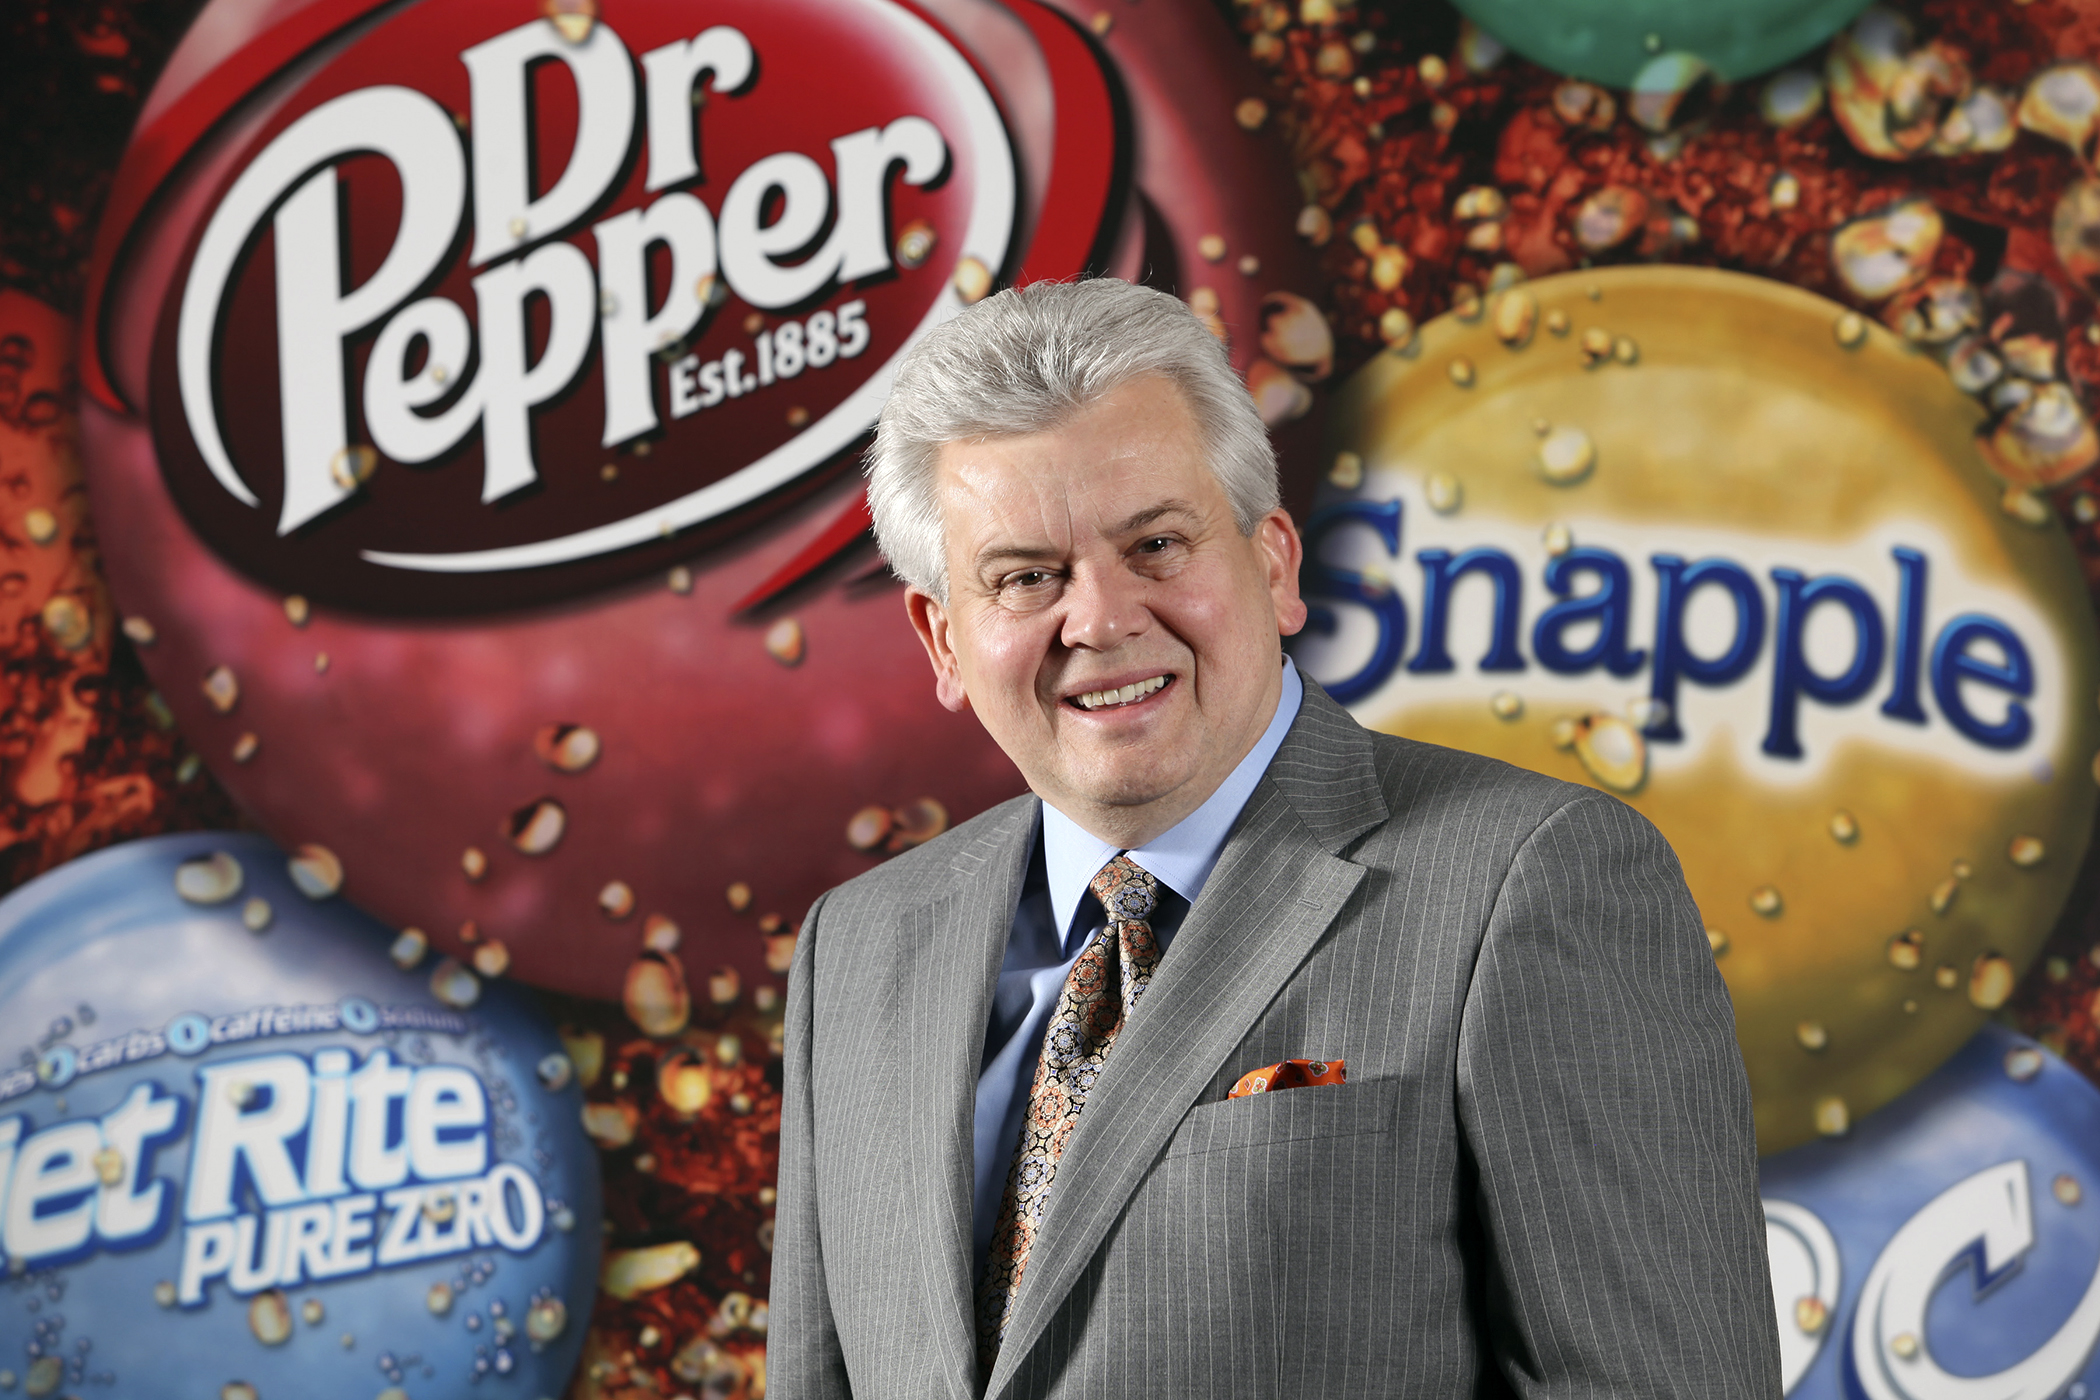 Larry Young, President and CEO of Dr Pepper Snapple Group, Inc., poses in the company's executive boardroom Thursday morning, Sept. 24, 2009, in Plano, Texas.